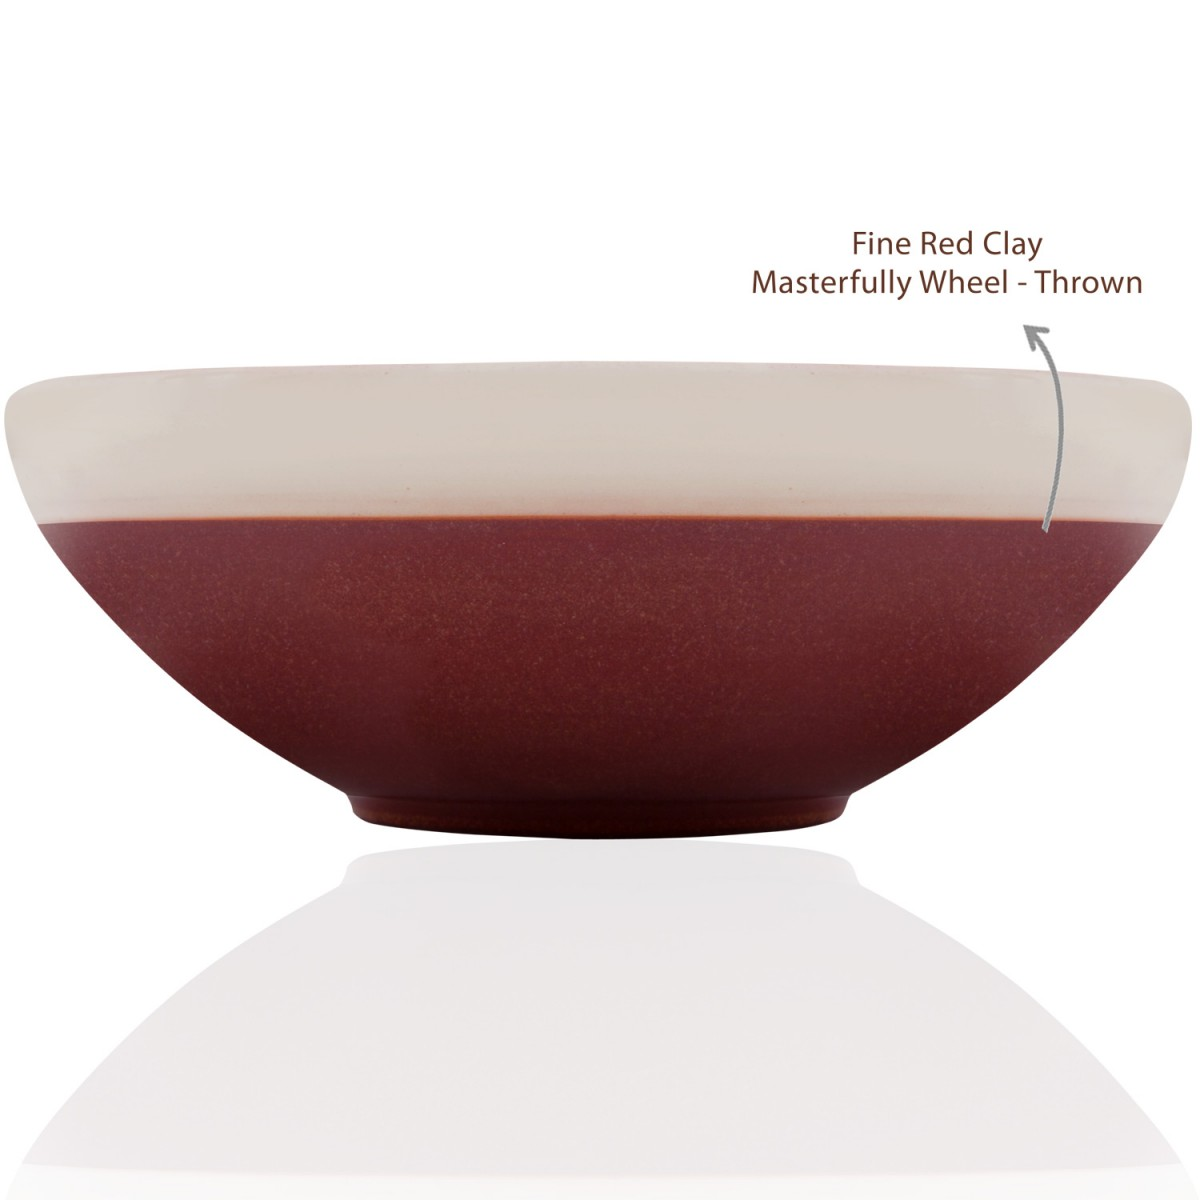 Decorative Bowls for Coffee Tables -A